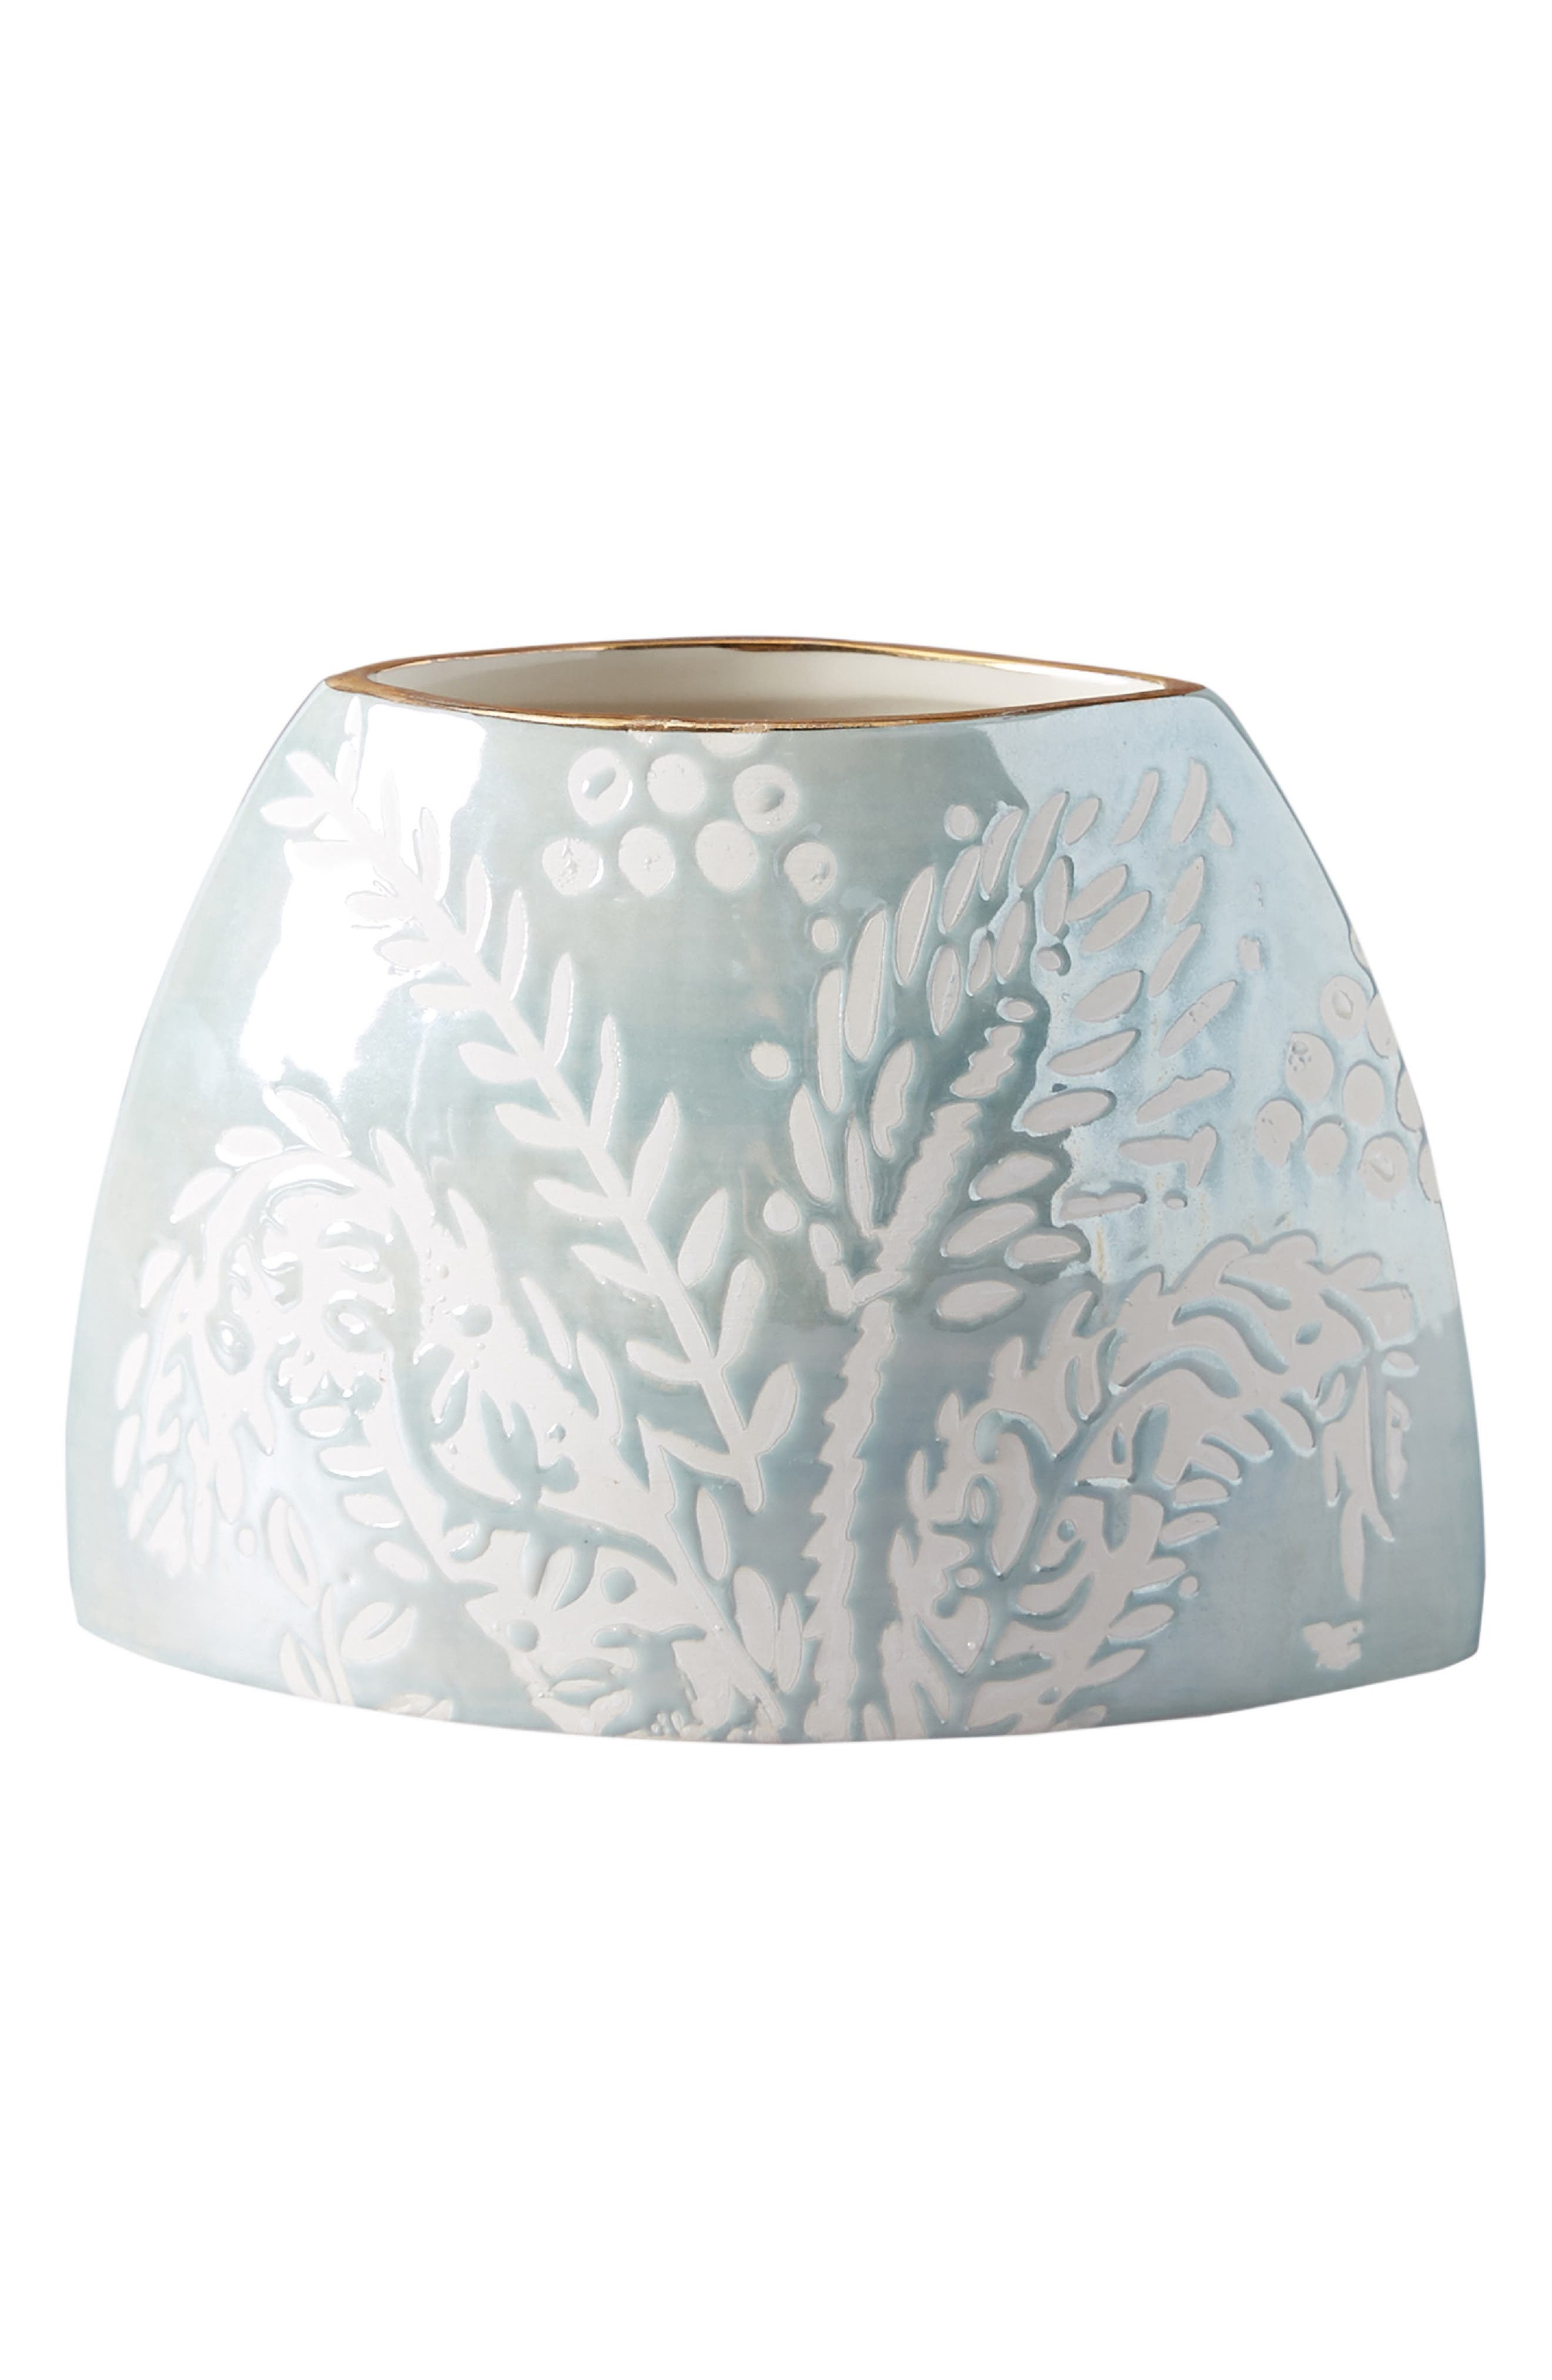 ANTHROPOLOGIE,                             Holly Vase,                             Alternate thumbnail 3, color,                             BLUE